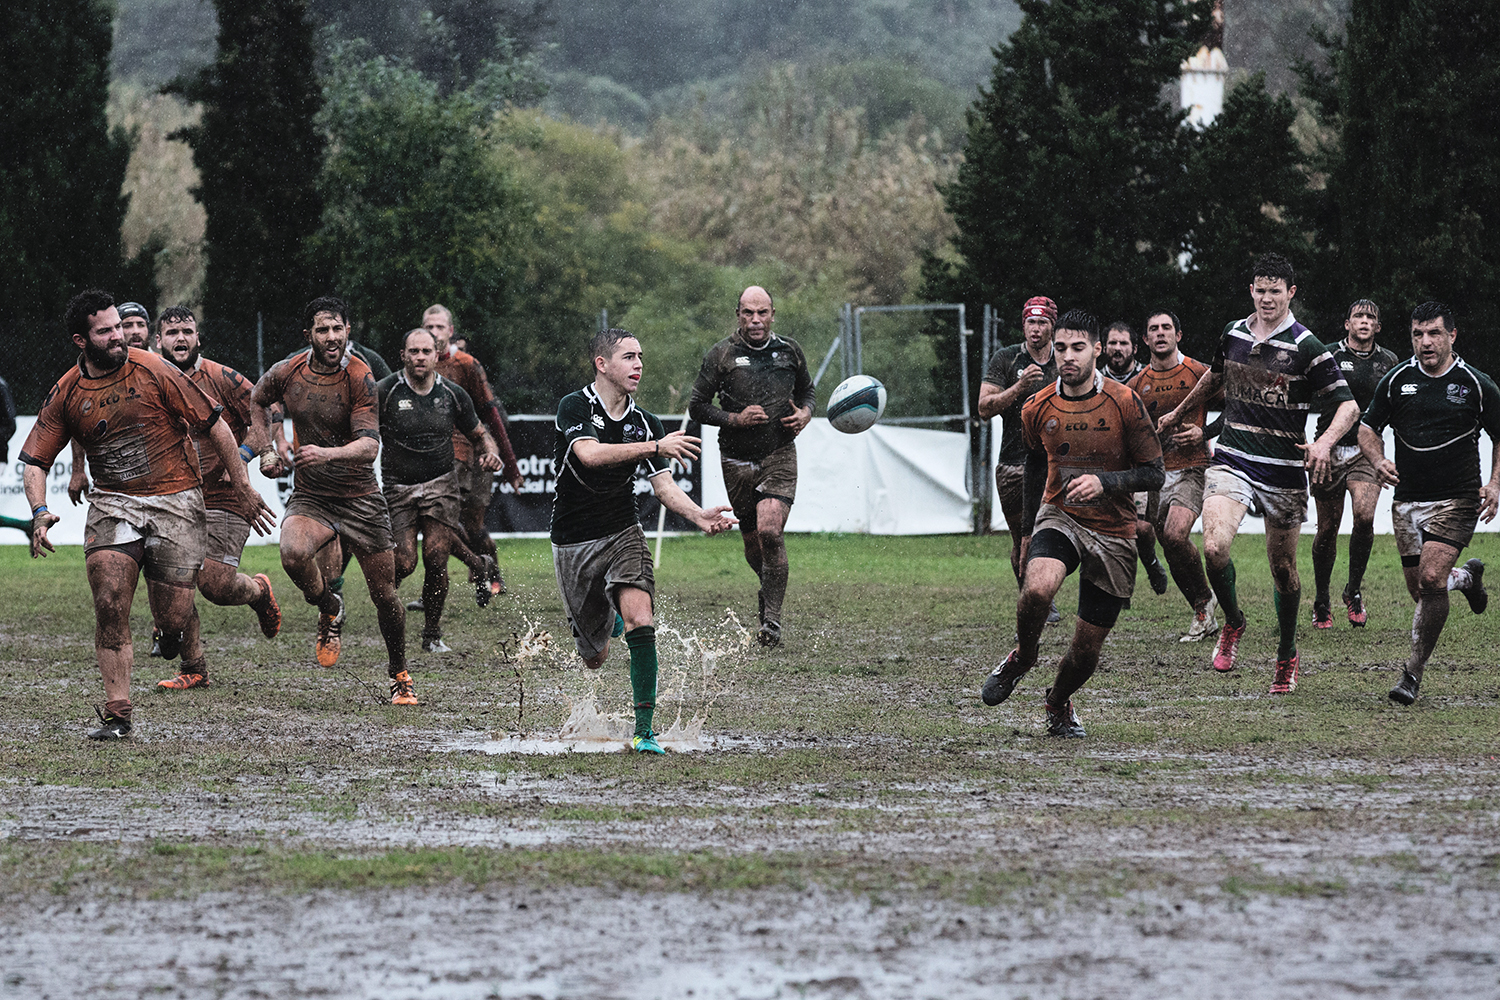 Players in rugby match passing the ball